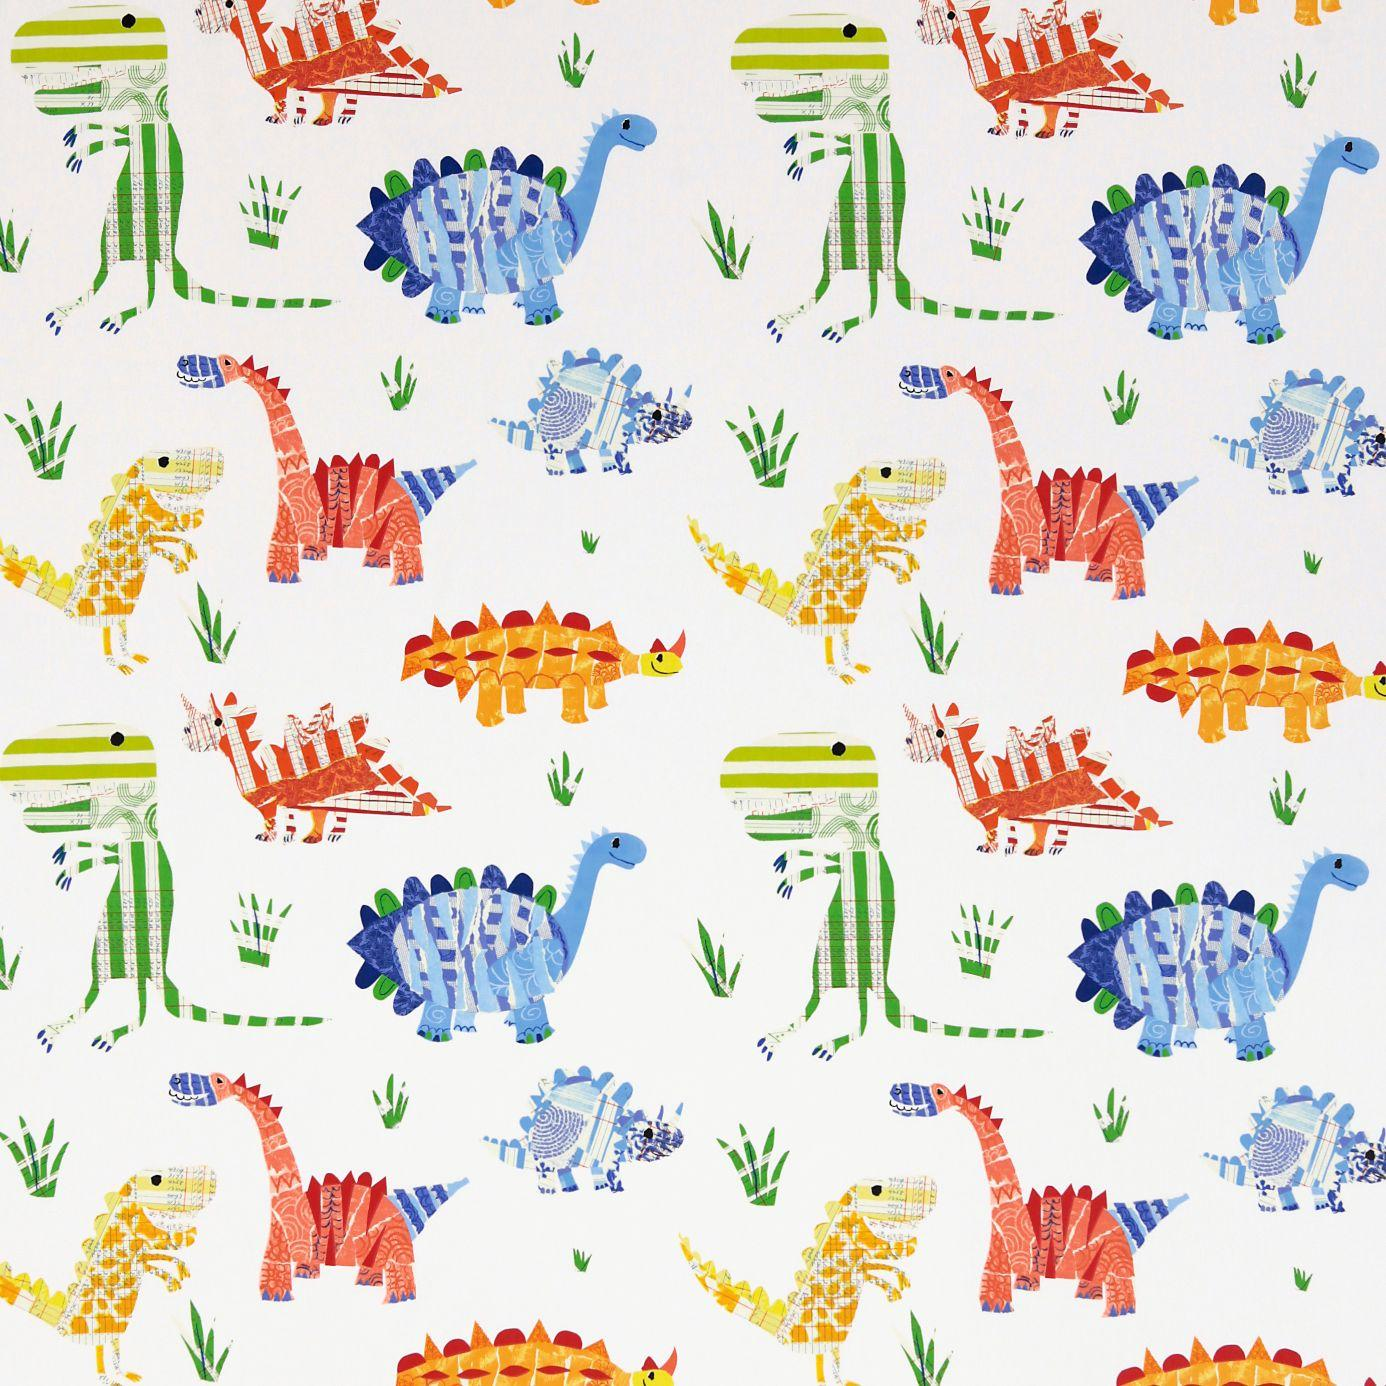 jolly jurassic fabric aqua tangerine apple natural 3229